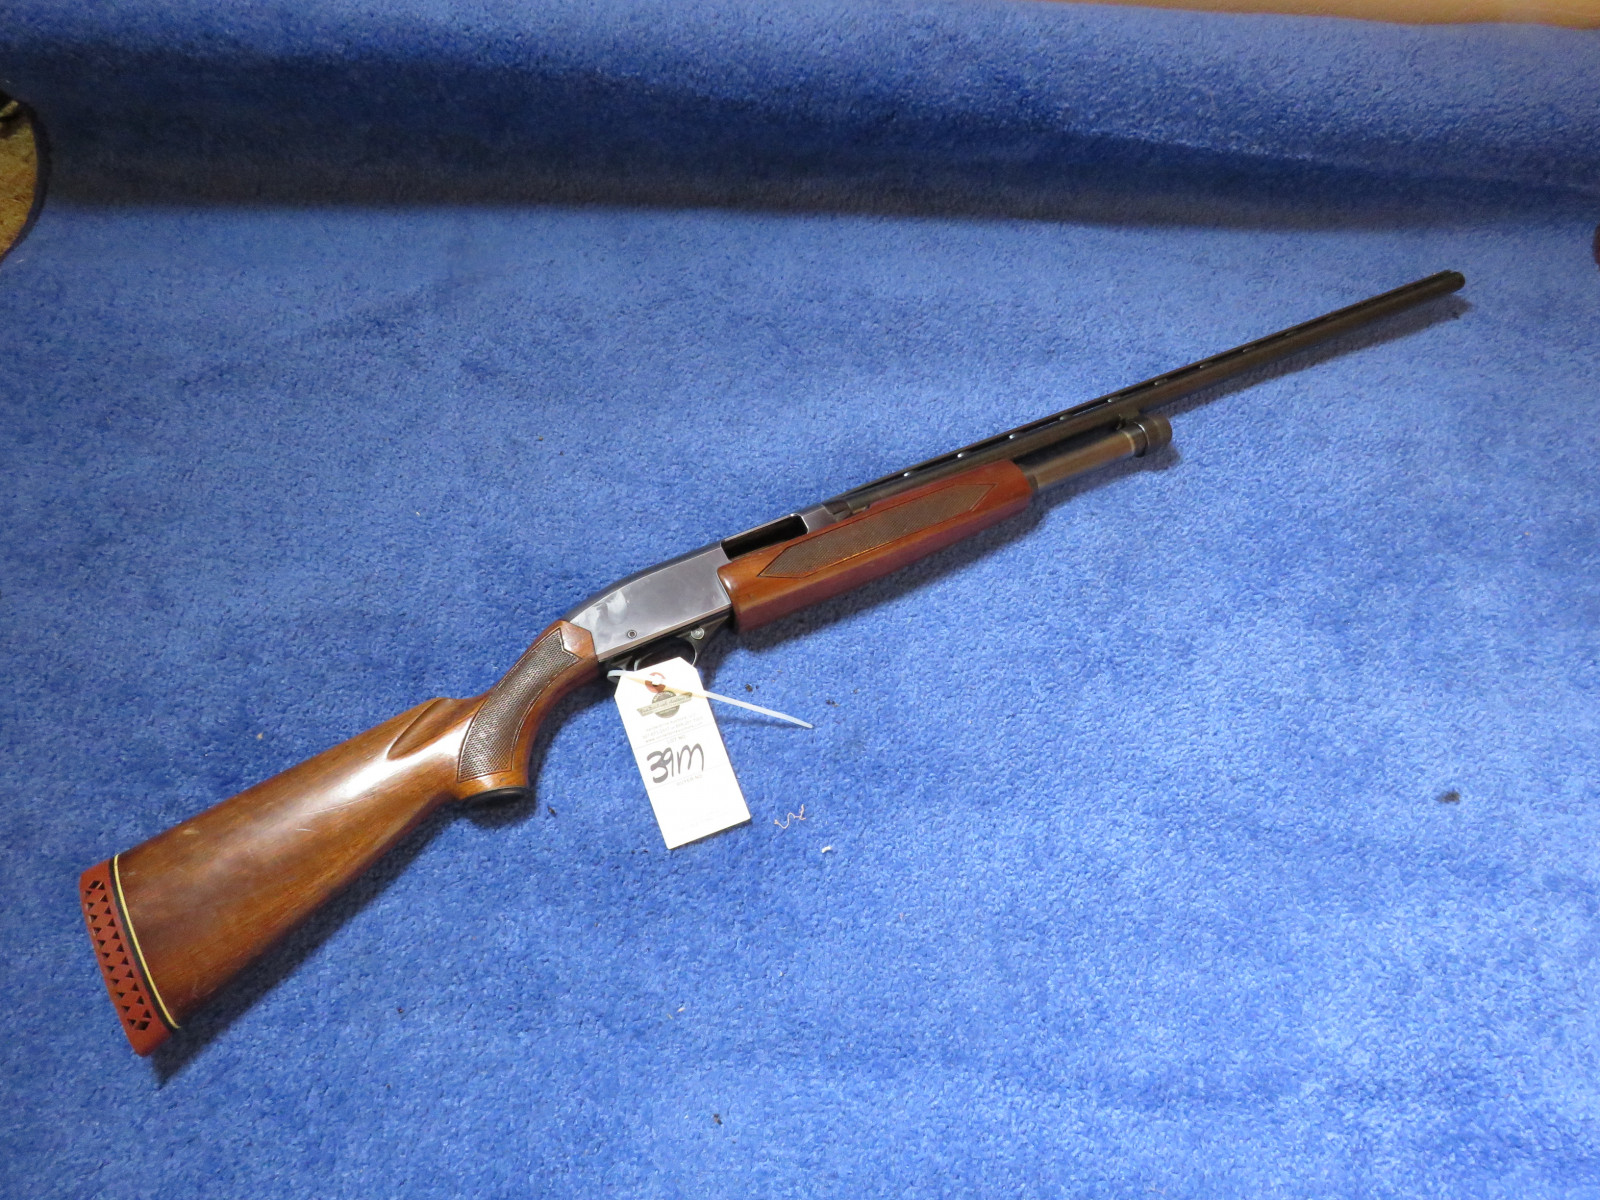 Winchester Model 1200 20 Gauge Shotgun - Image 1